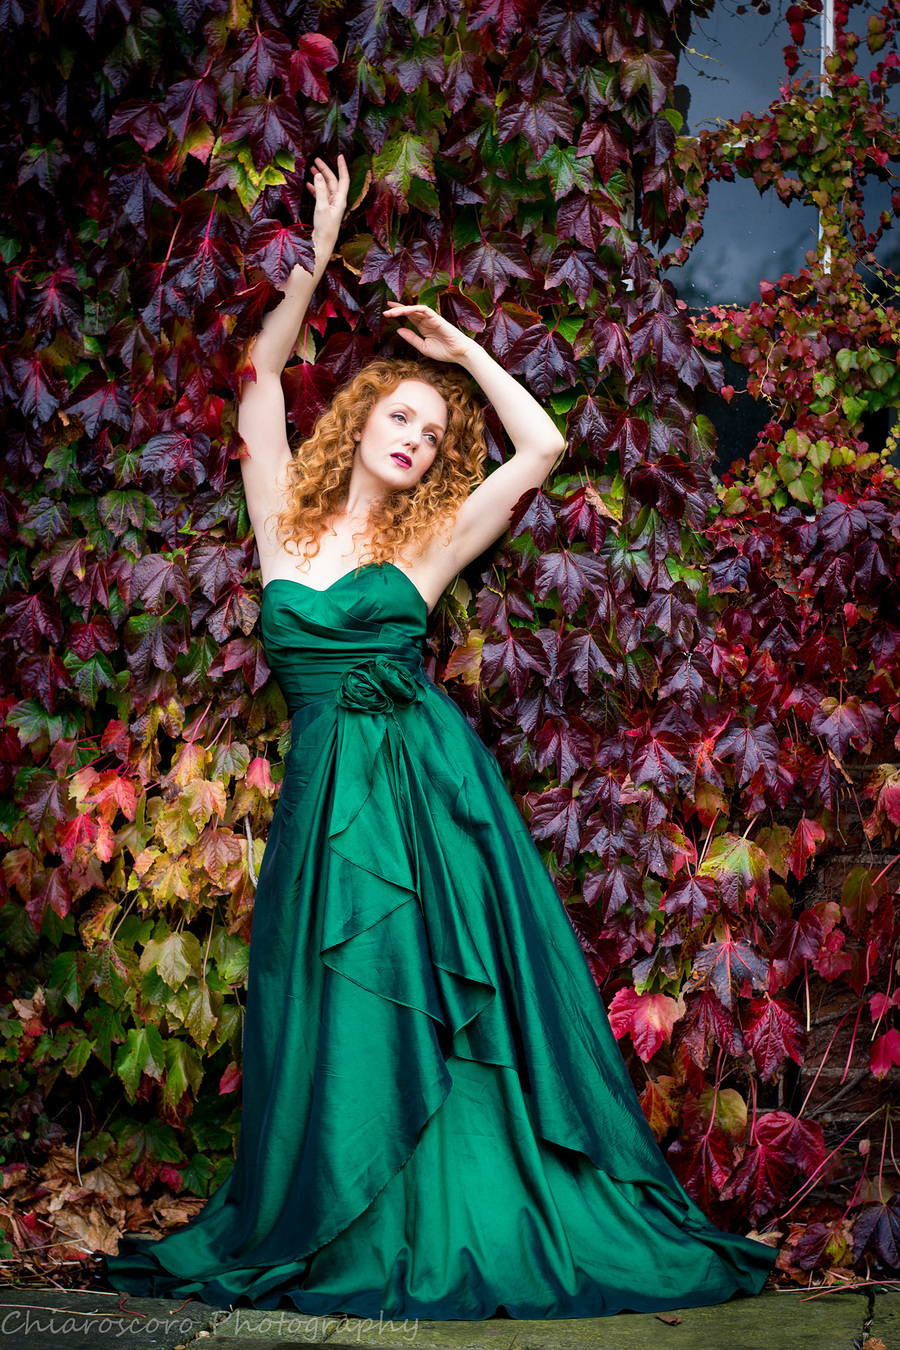 Autumn fairy tale / Photography by Chiaroscoro Photography, Model Ivory Flame / Uploaded 24th October 2016 @ 08:11 PM